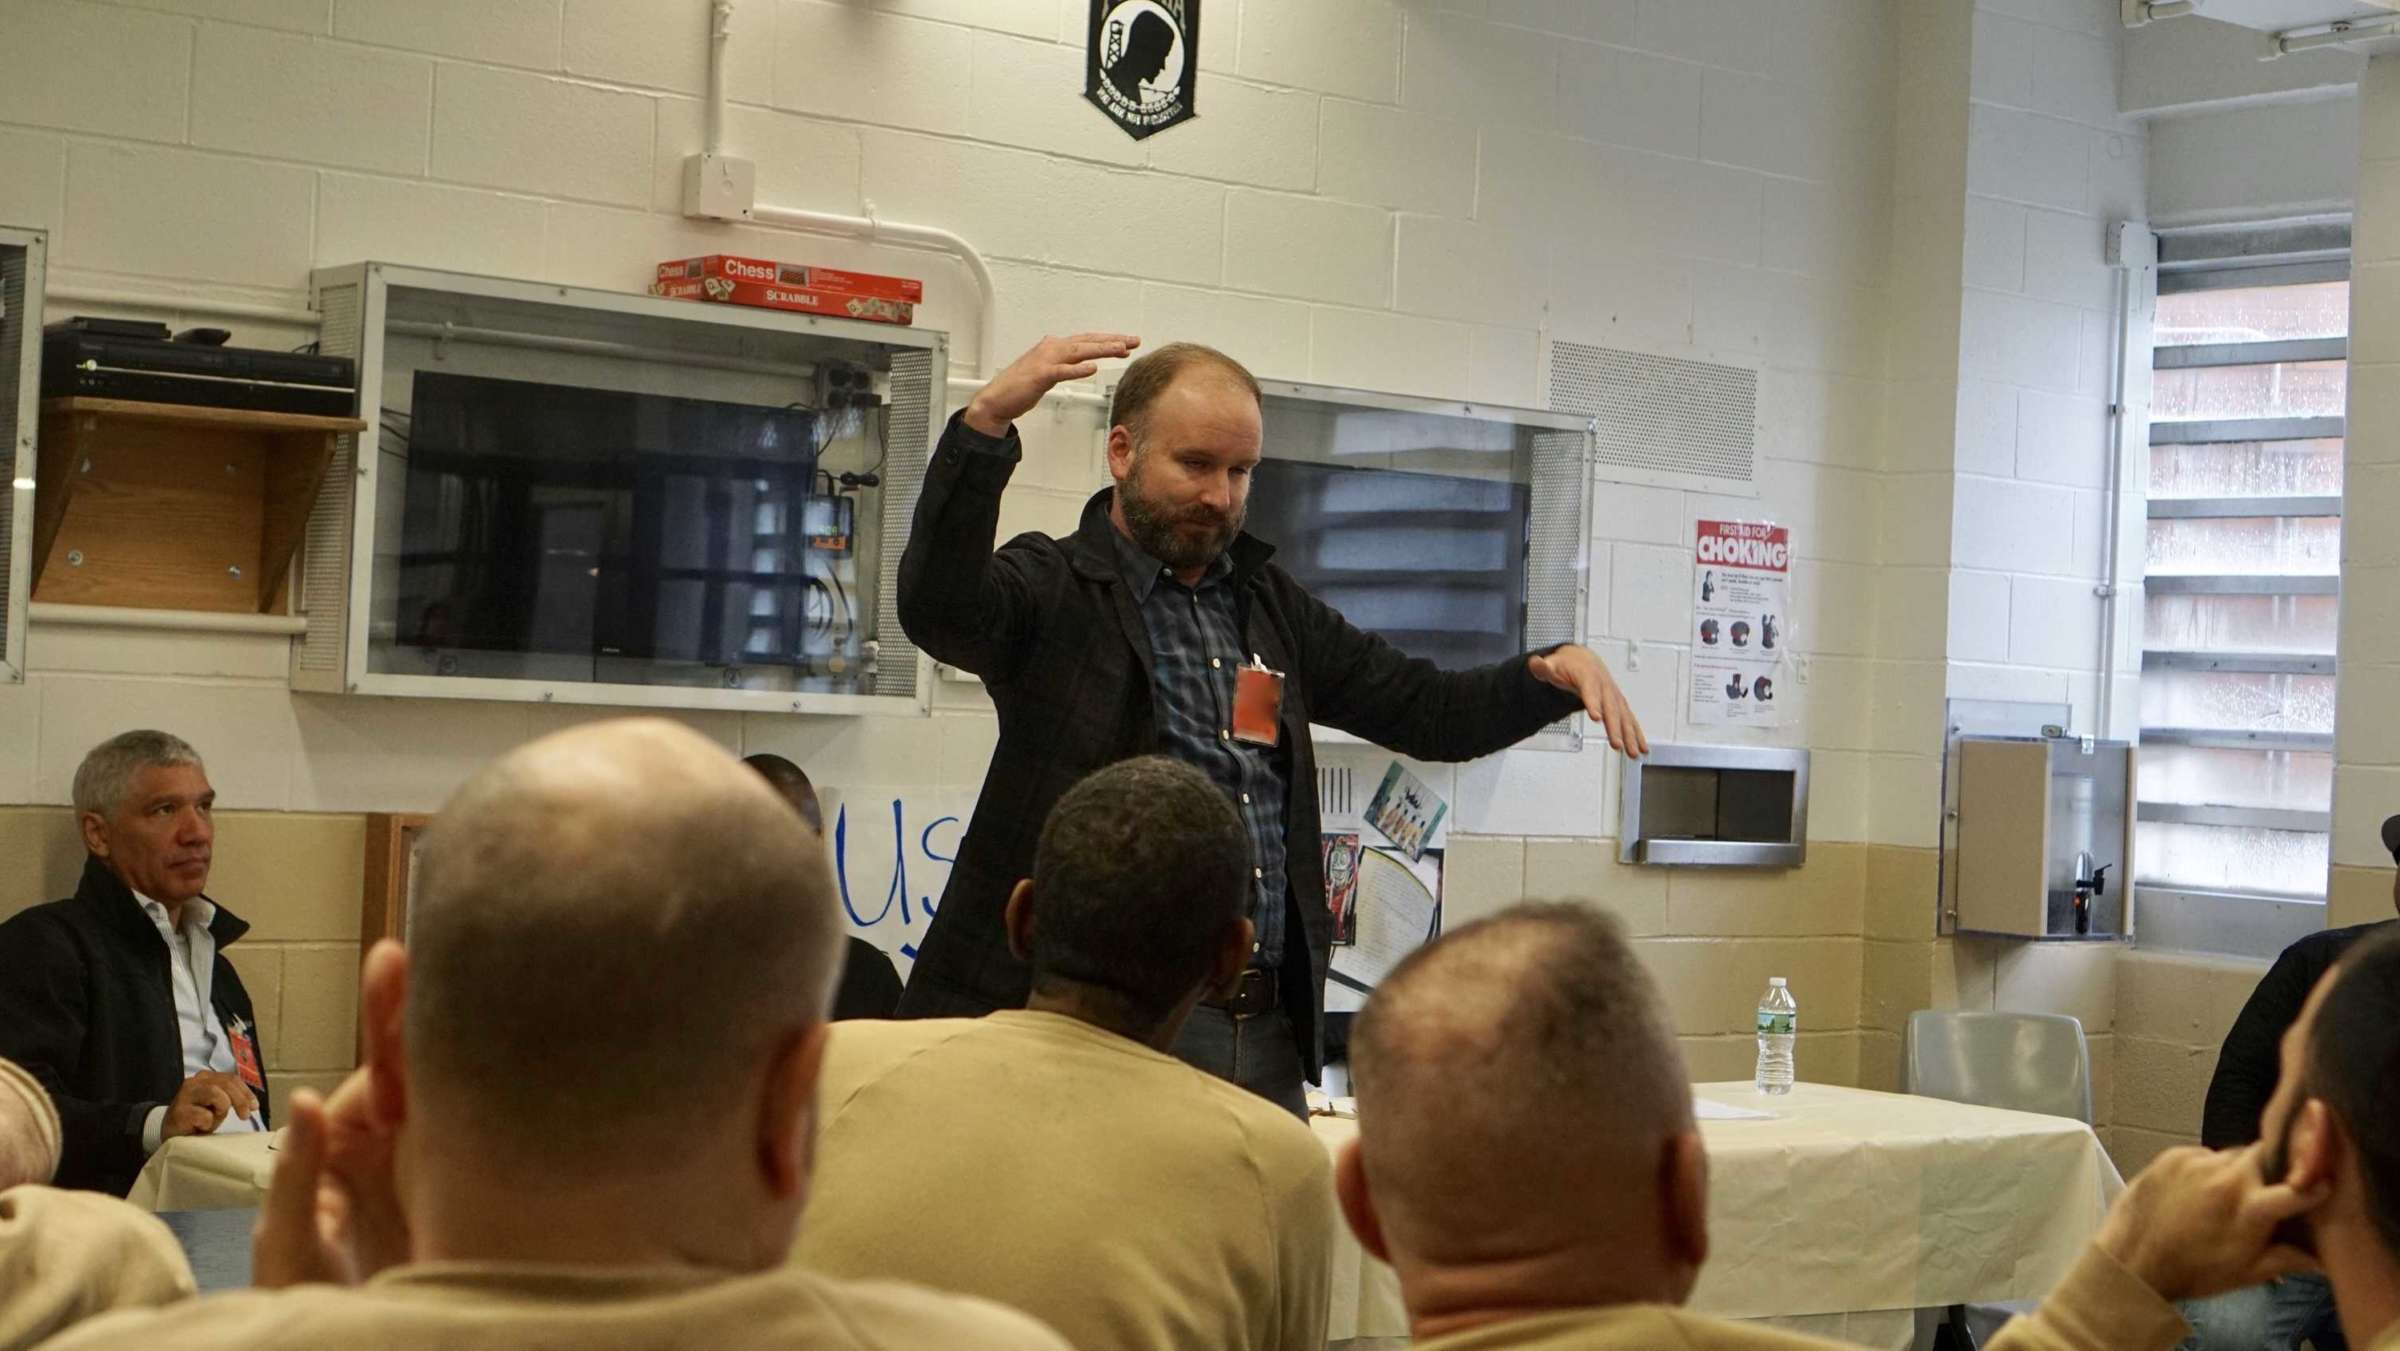 Theater Of War In Rikers Veterans Unit